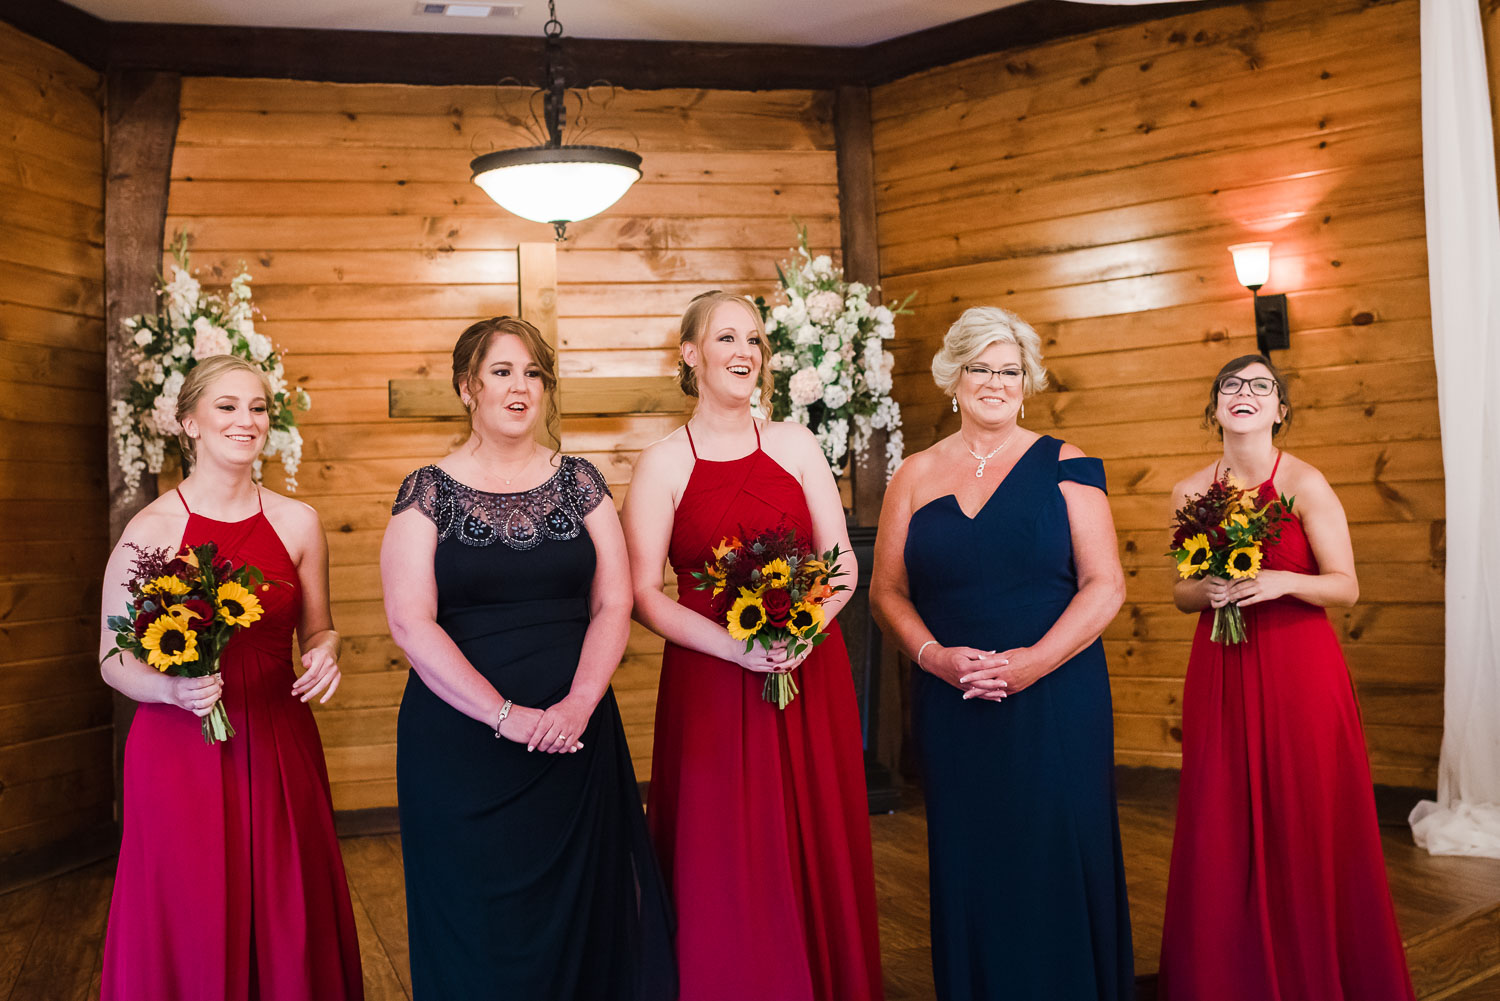 bridesmaids wearing deep red wine colored long dresses and moms wearing navy blue dresses